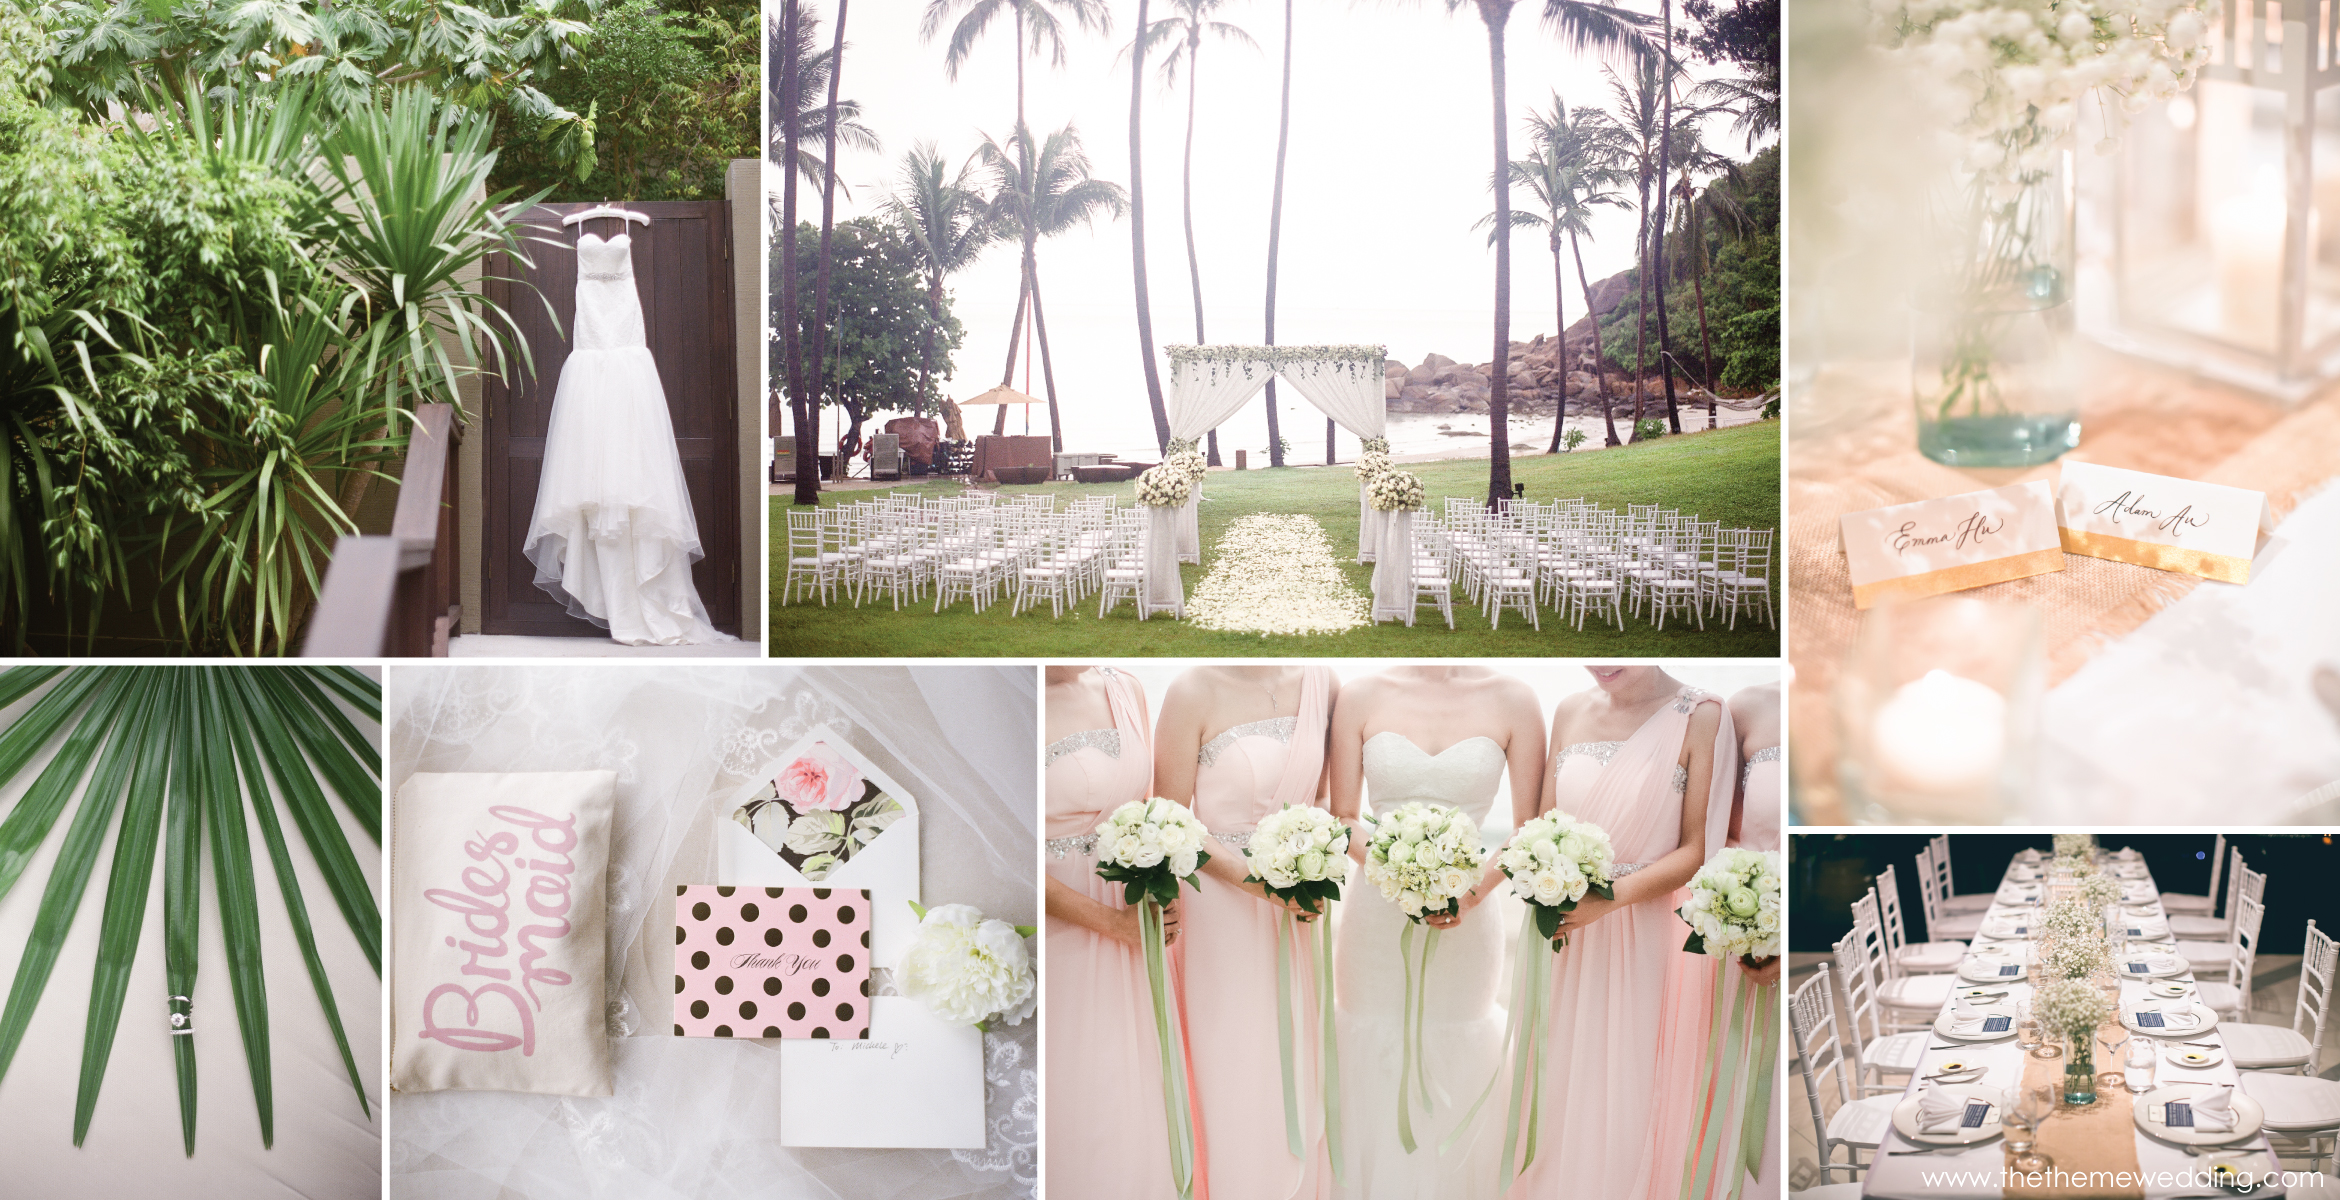 The Theme Wedding Design - Wedding Planner | 婚禮統籌 | Luxury ...